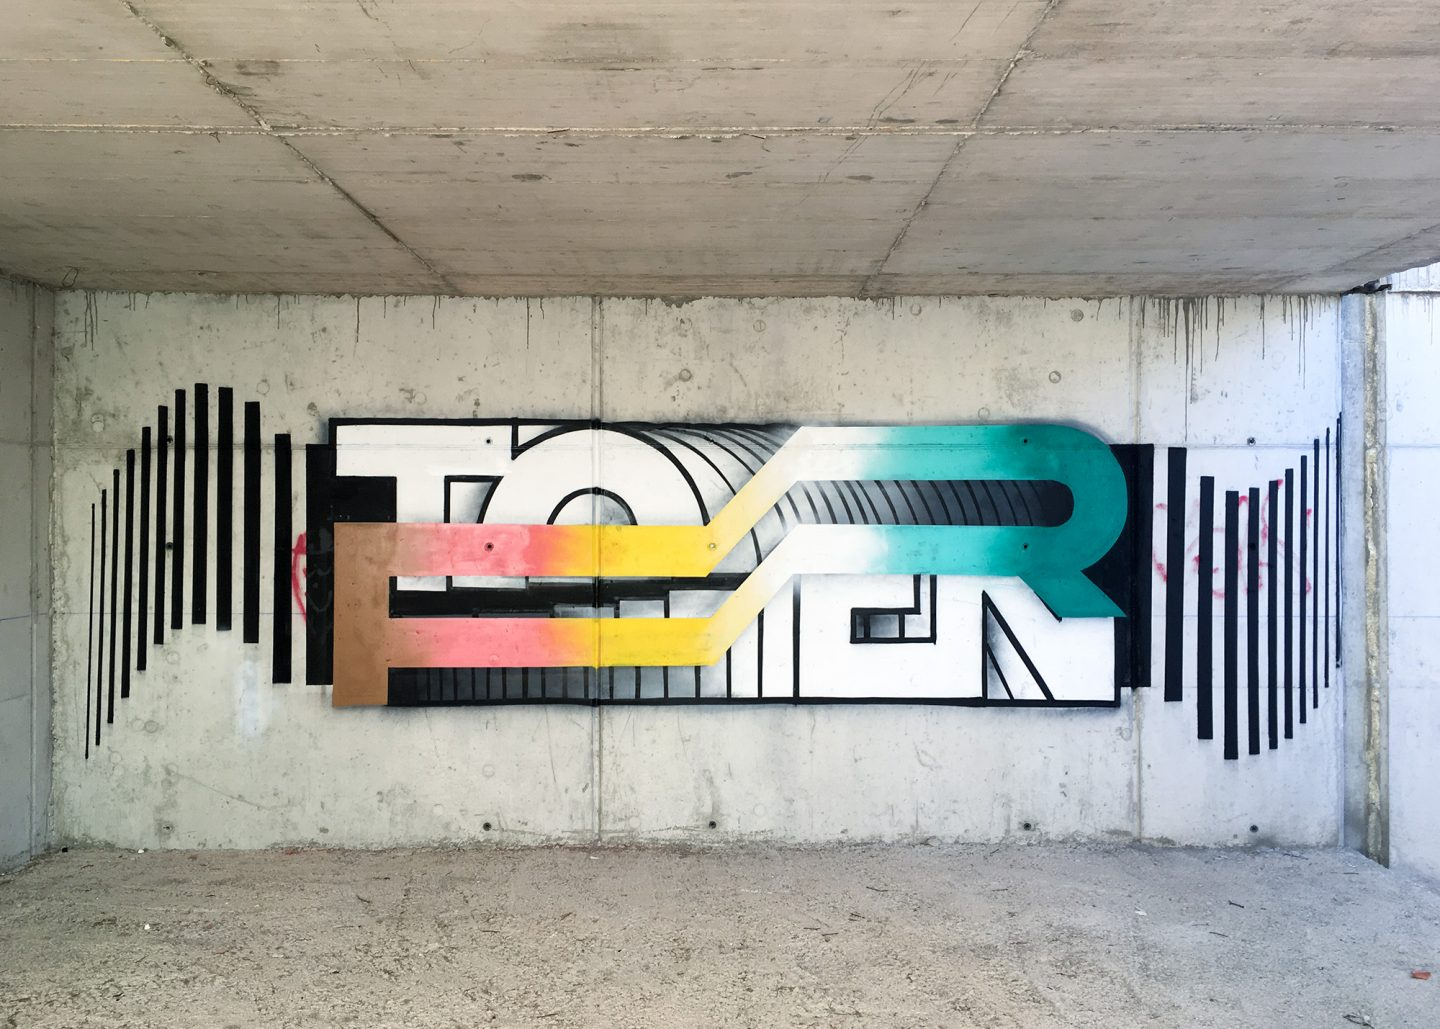 Interview: TOREN; Spain's Graffiti Brutalist